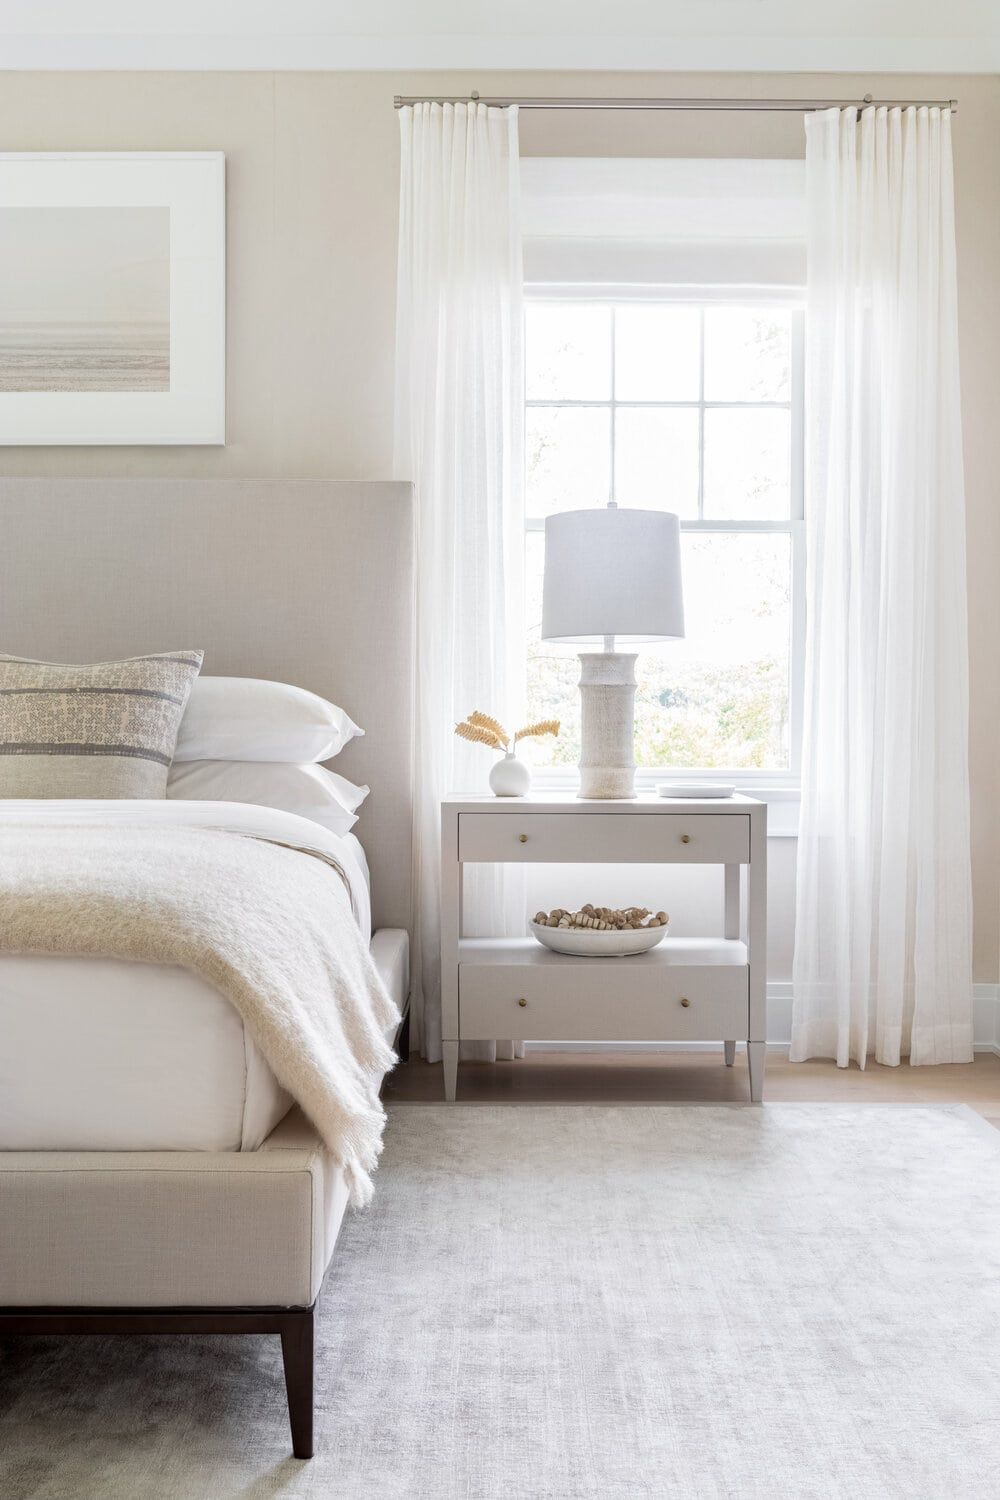 Neutral Bedroom Decorating Ideas Creating Calm With Character Bedroom Interior Master Bedrooms Decor Transitional Master Bedroom Beige bedroom decorating ideas